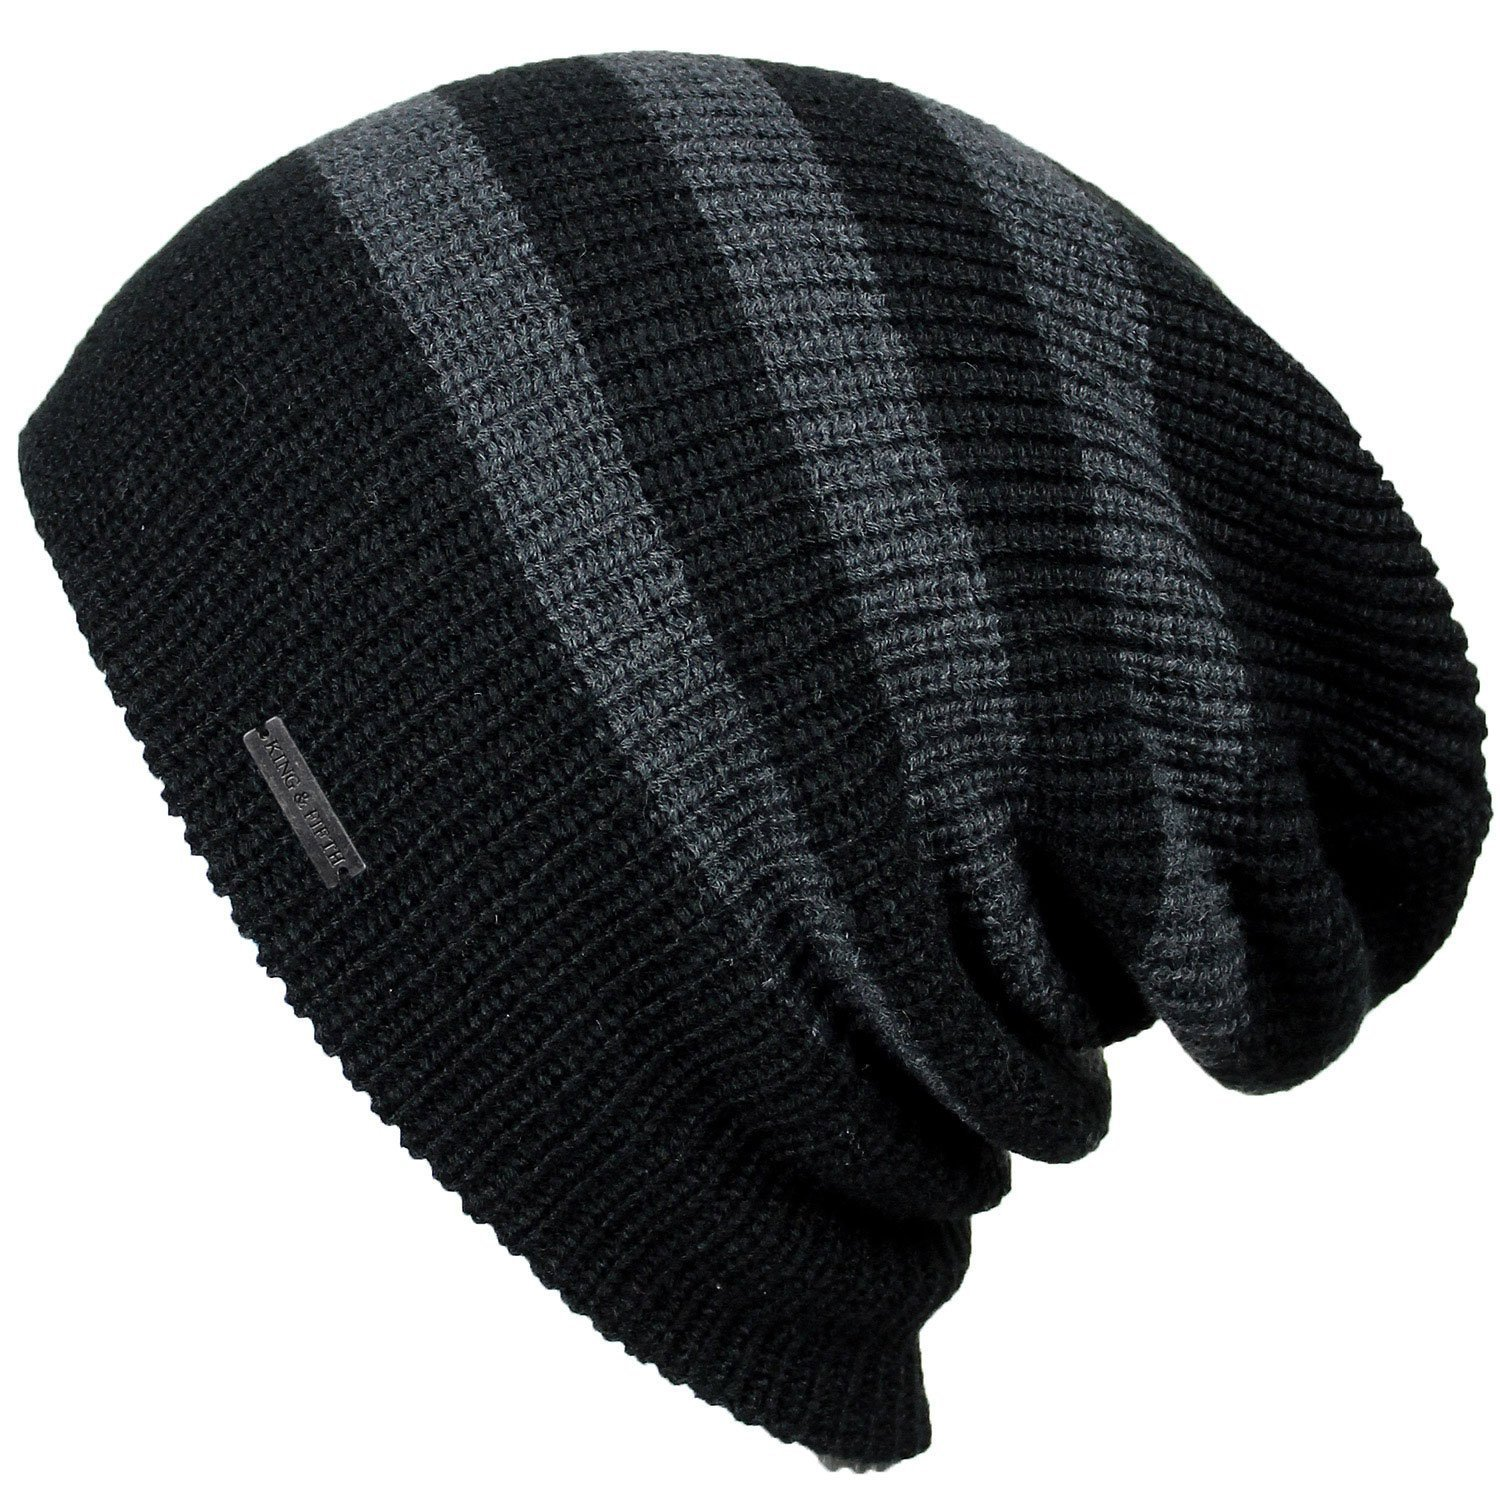 Mens Slouchy Beanie - The Forte - Black Beanie Hat - King and Fifth Supply Co.